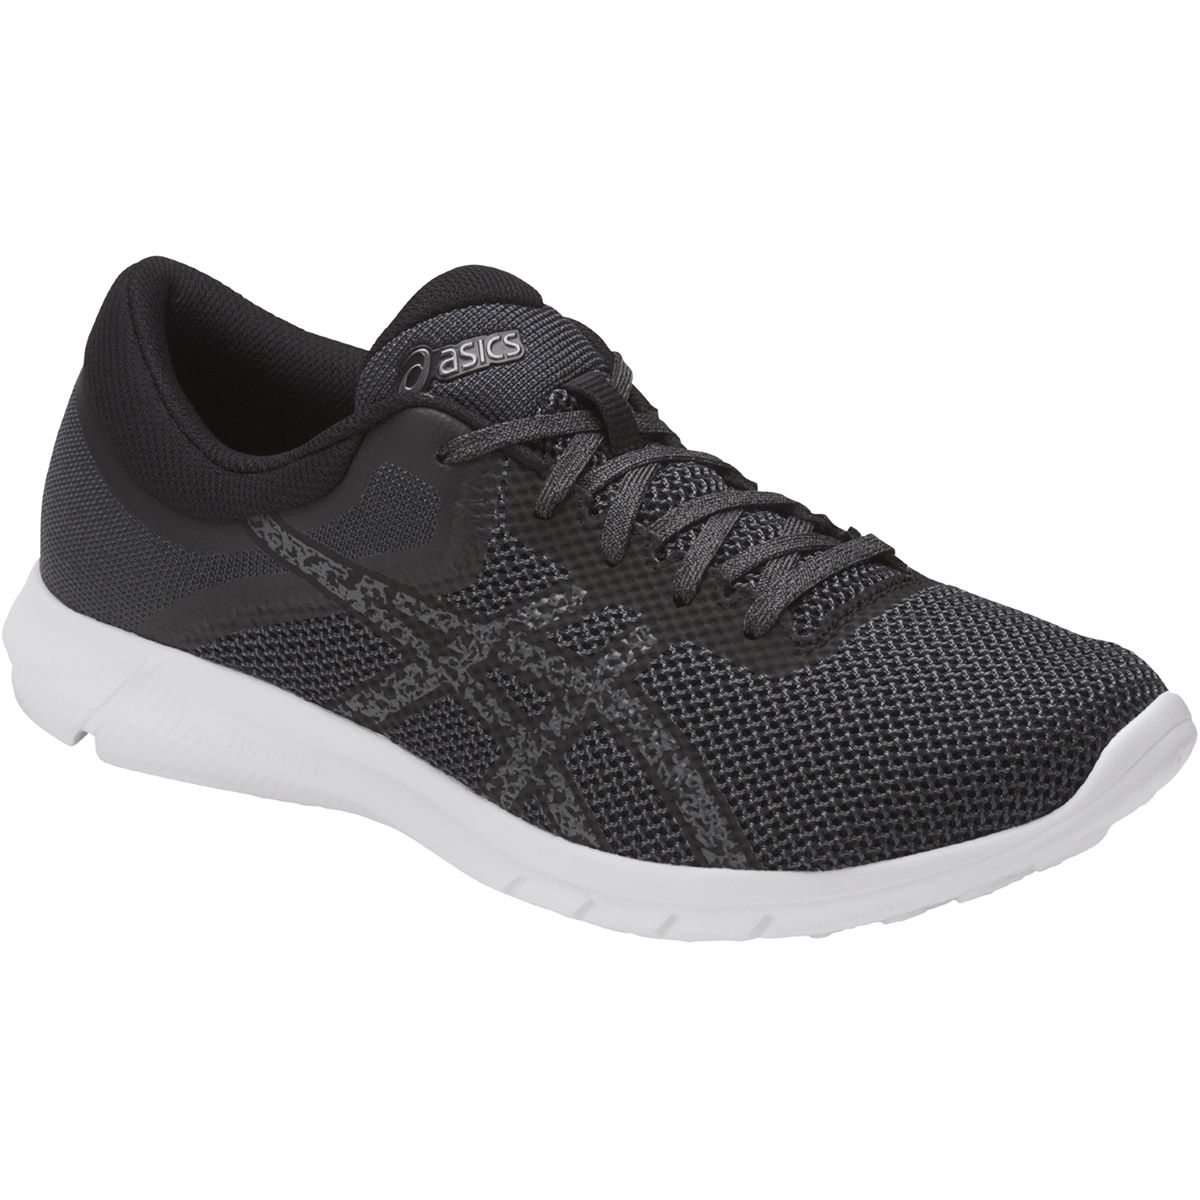 Chaussures Asics Nitrofuze 2 - UK 7 Black/Carbon/White